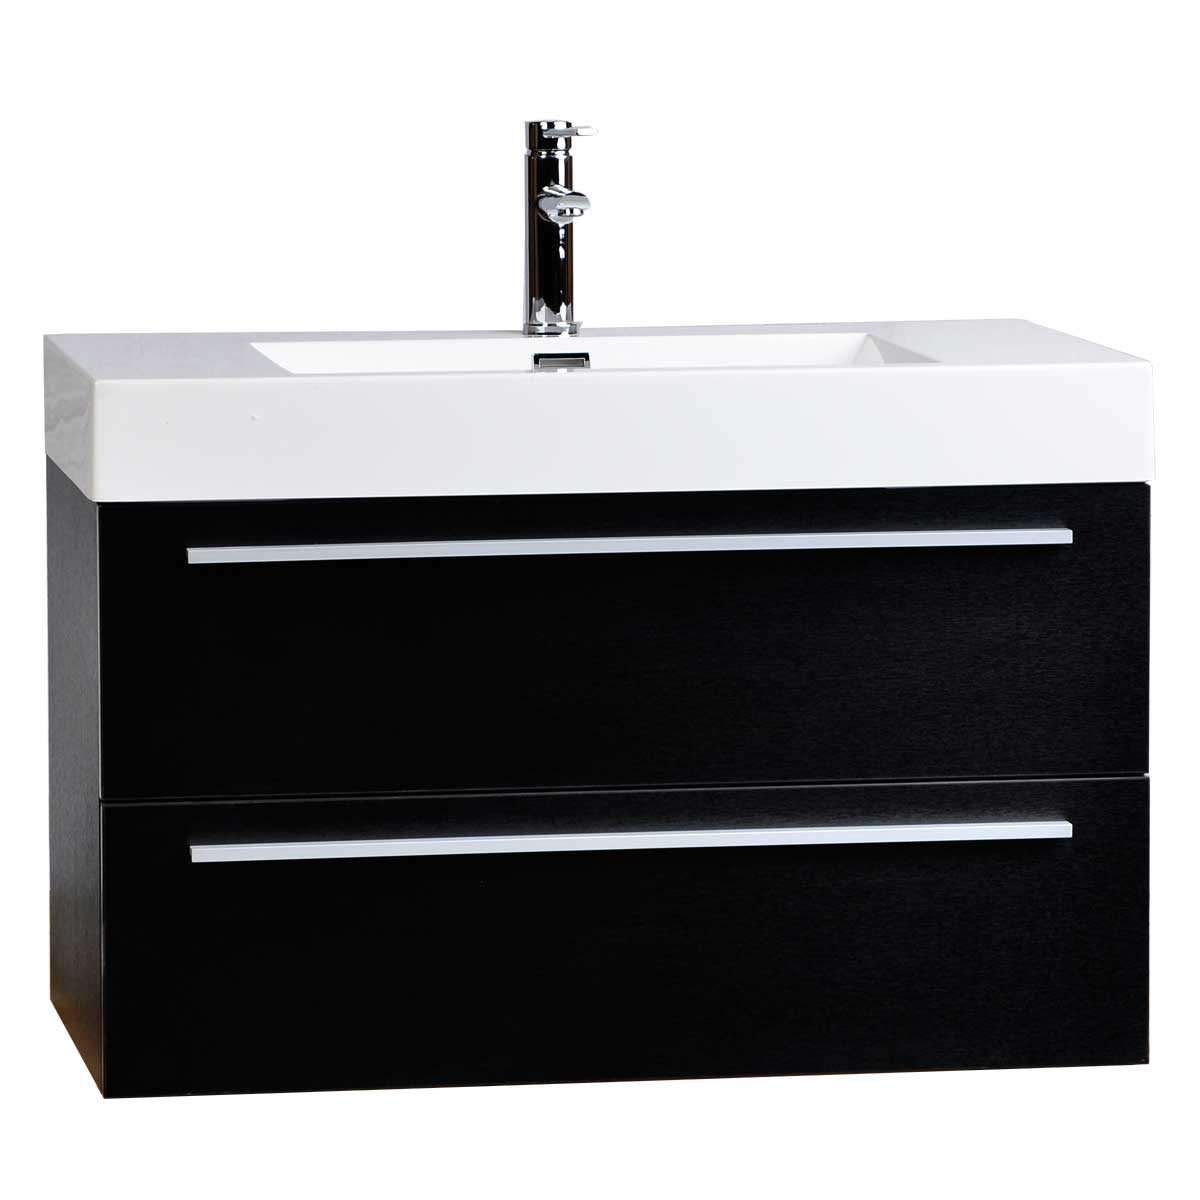 wall mount contemporary bathroom vanity black tn t1000 bk